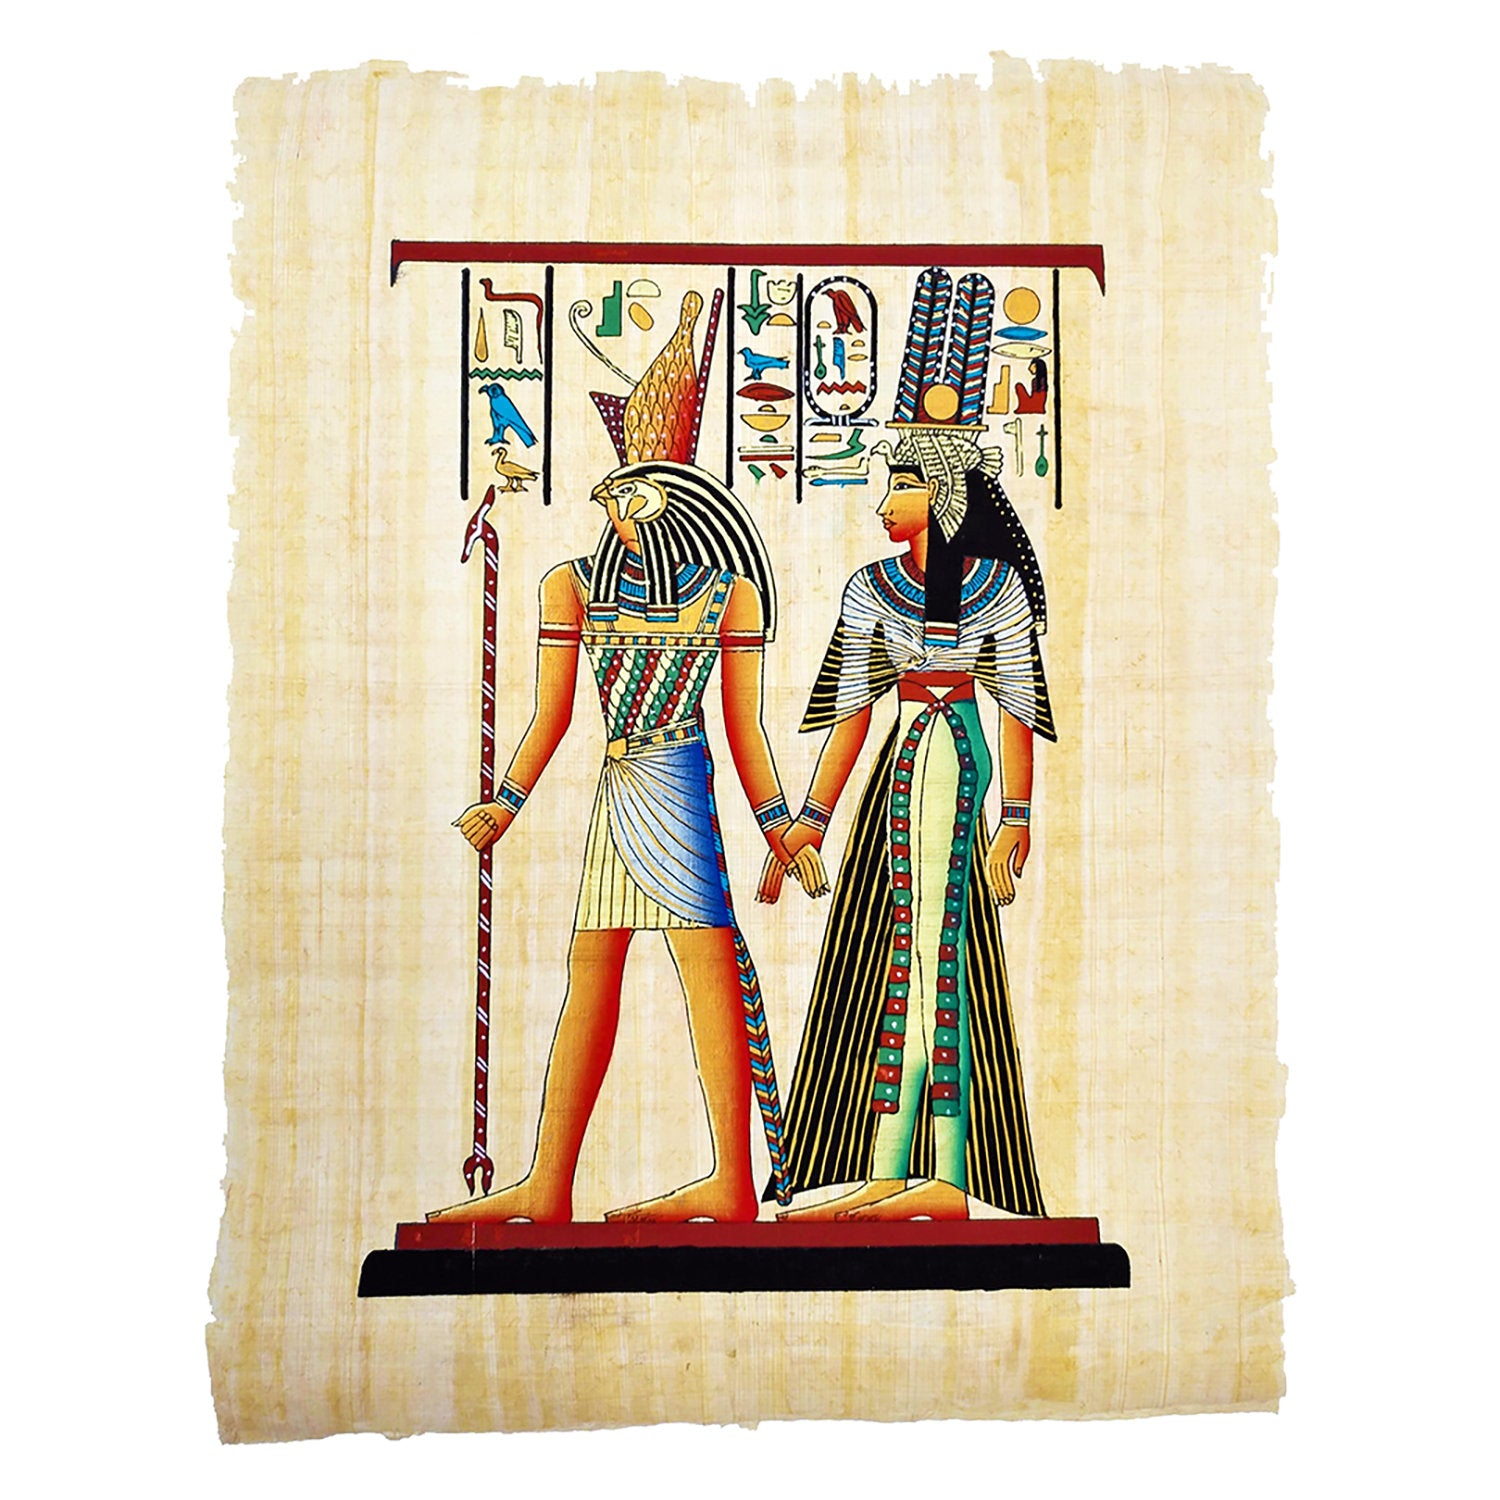 Hand-painted Horus Leading Queen Nefertari into the Afterlife - 30x40cm